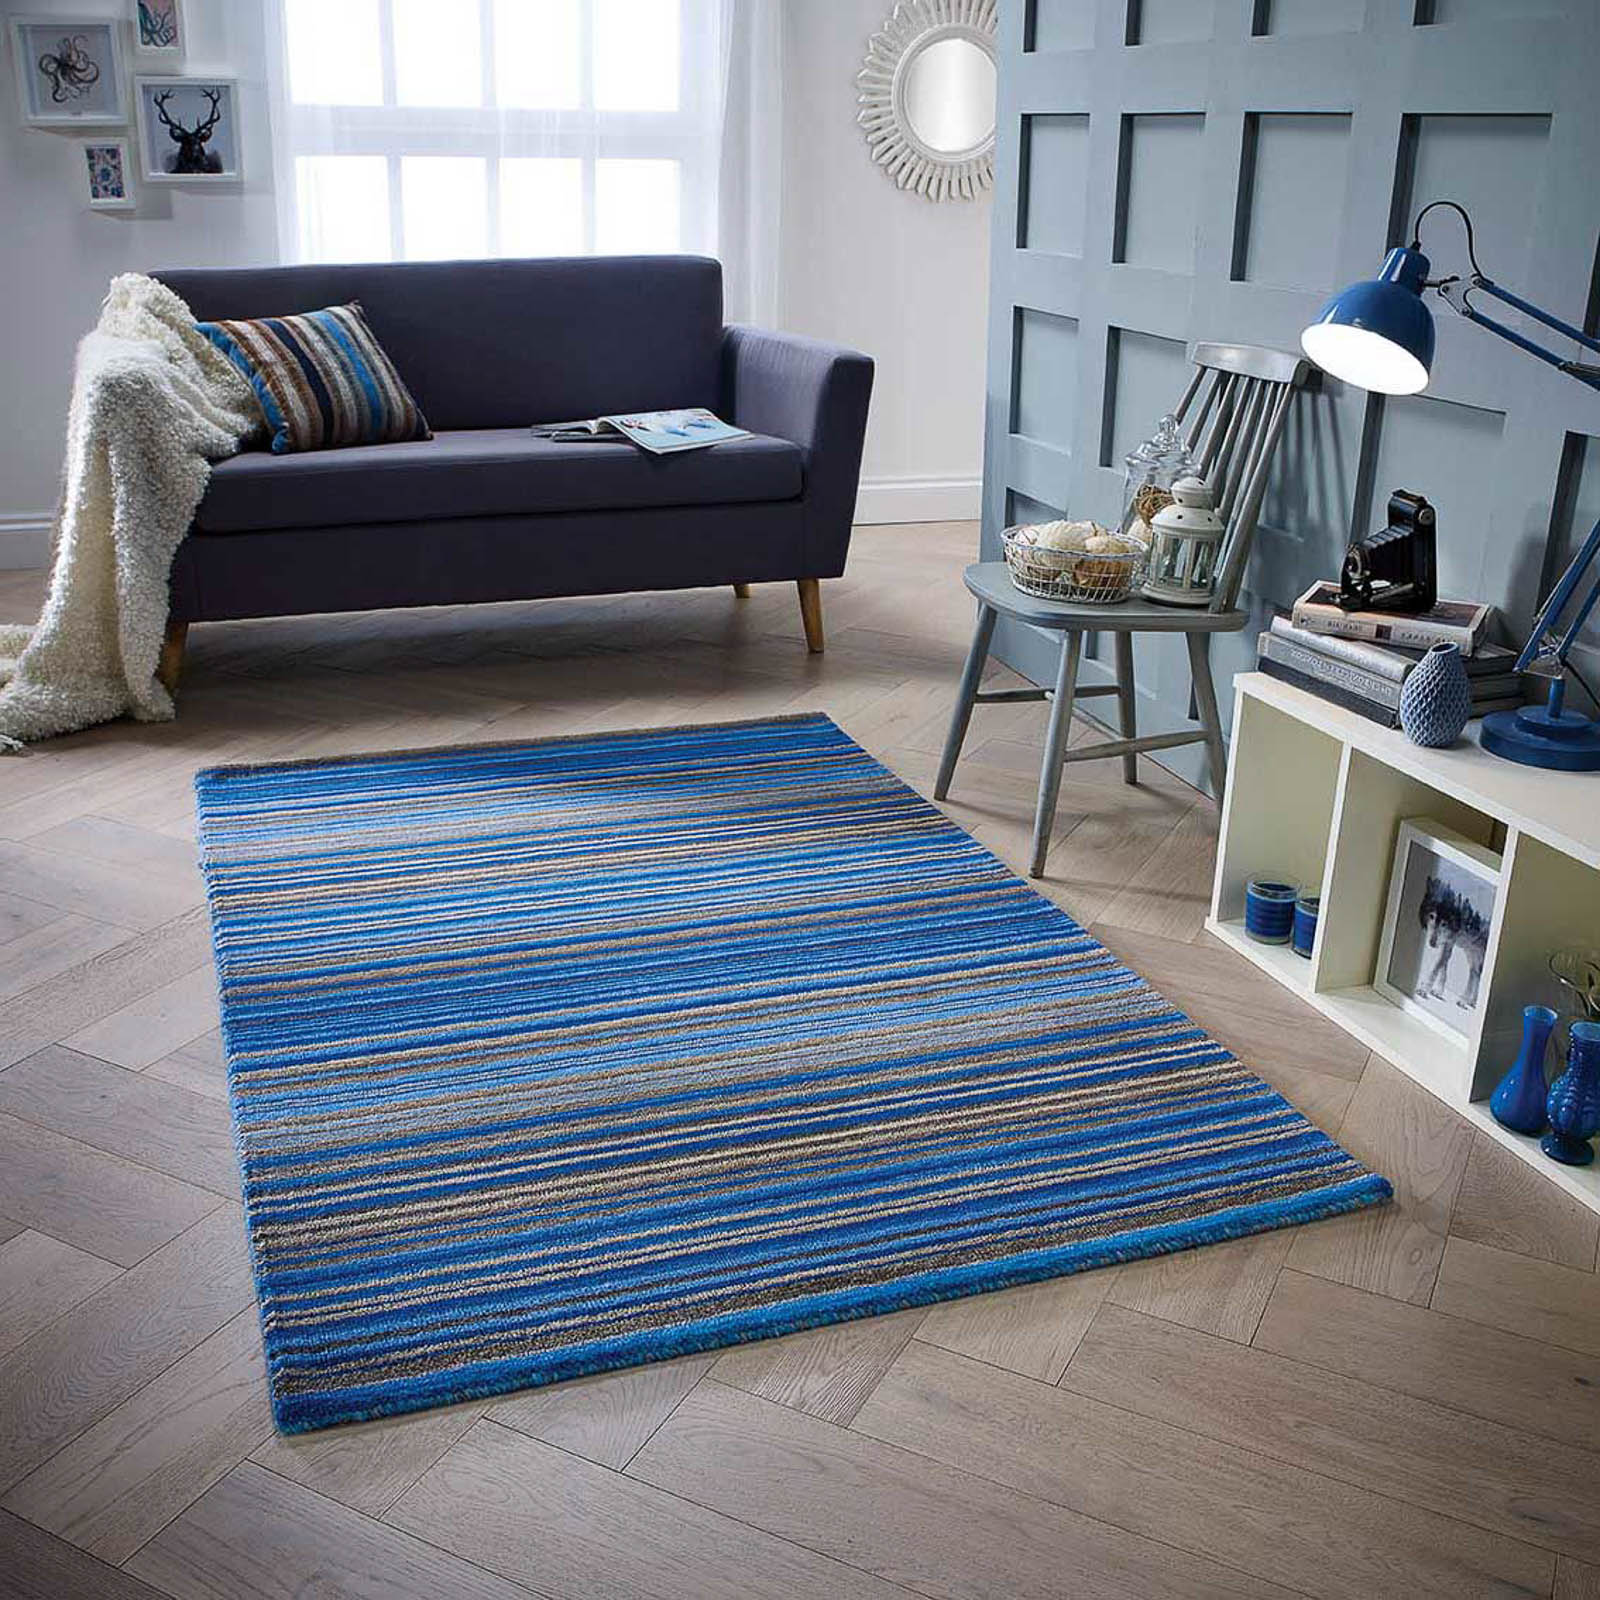 Carter Rug for student bedroom rugs